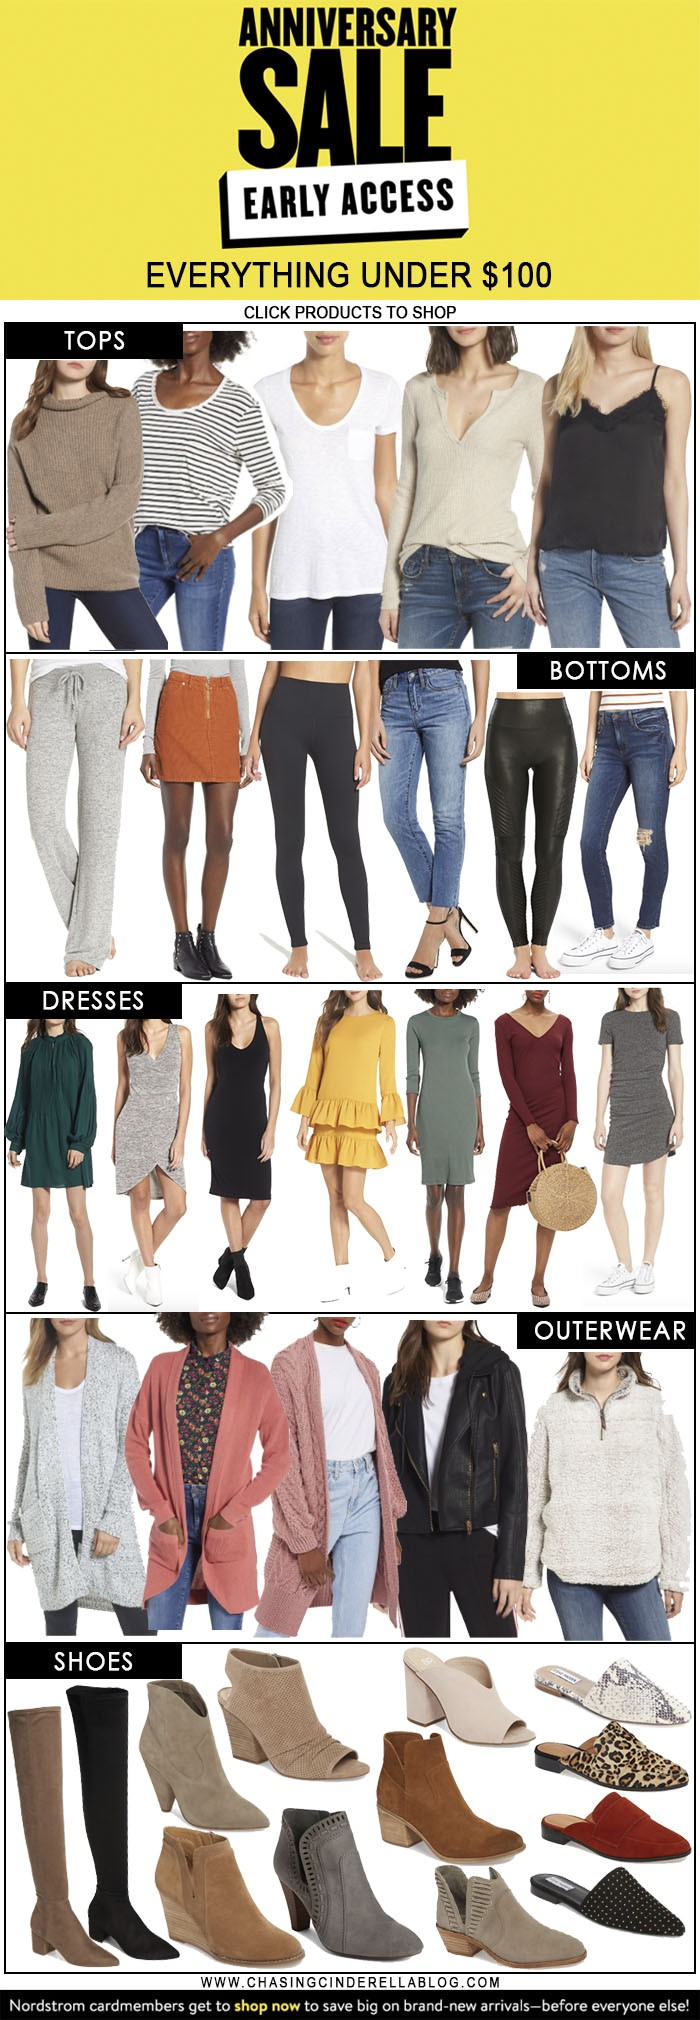 Nordstrom Anniversary Sale Early Access Top Picks Under $100 | Chasing Cinderella